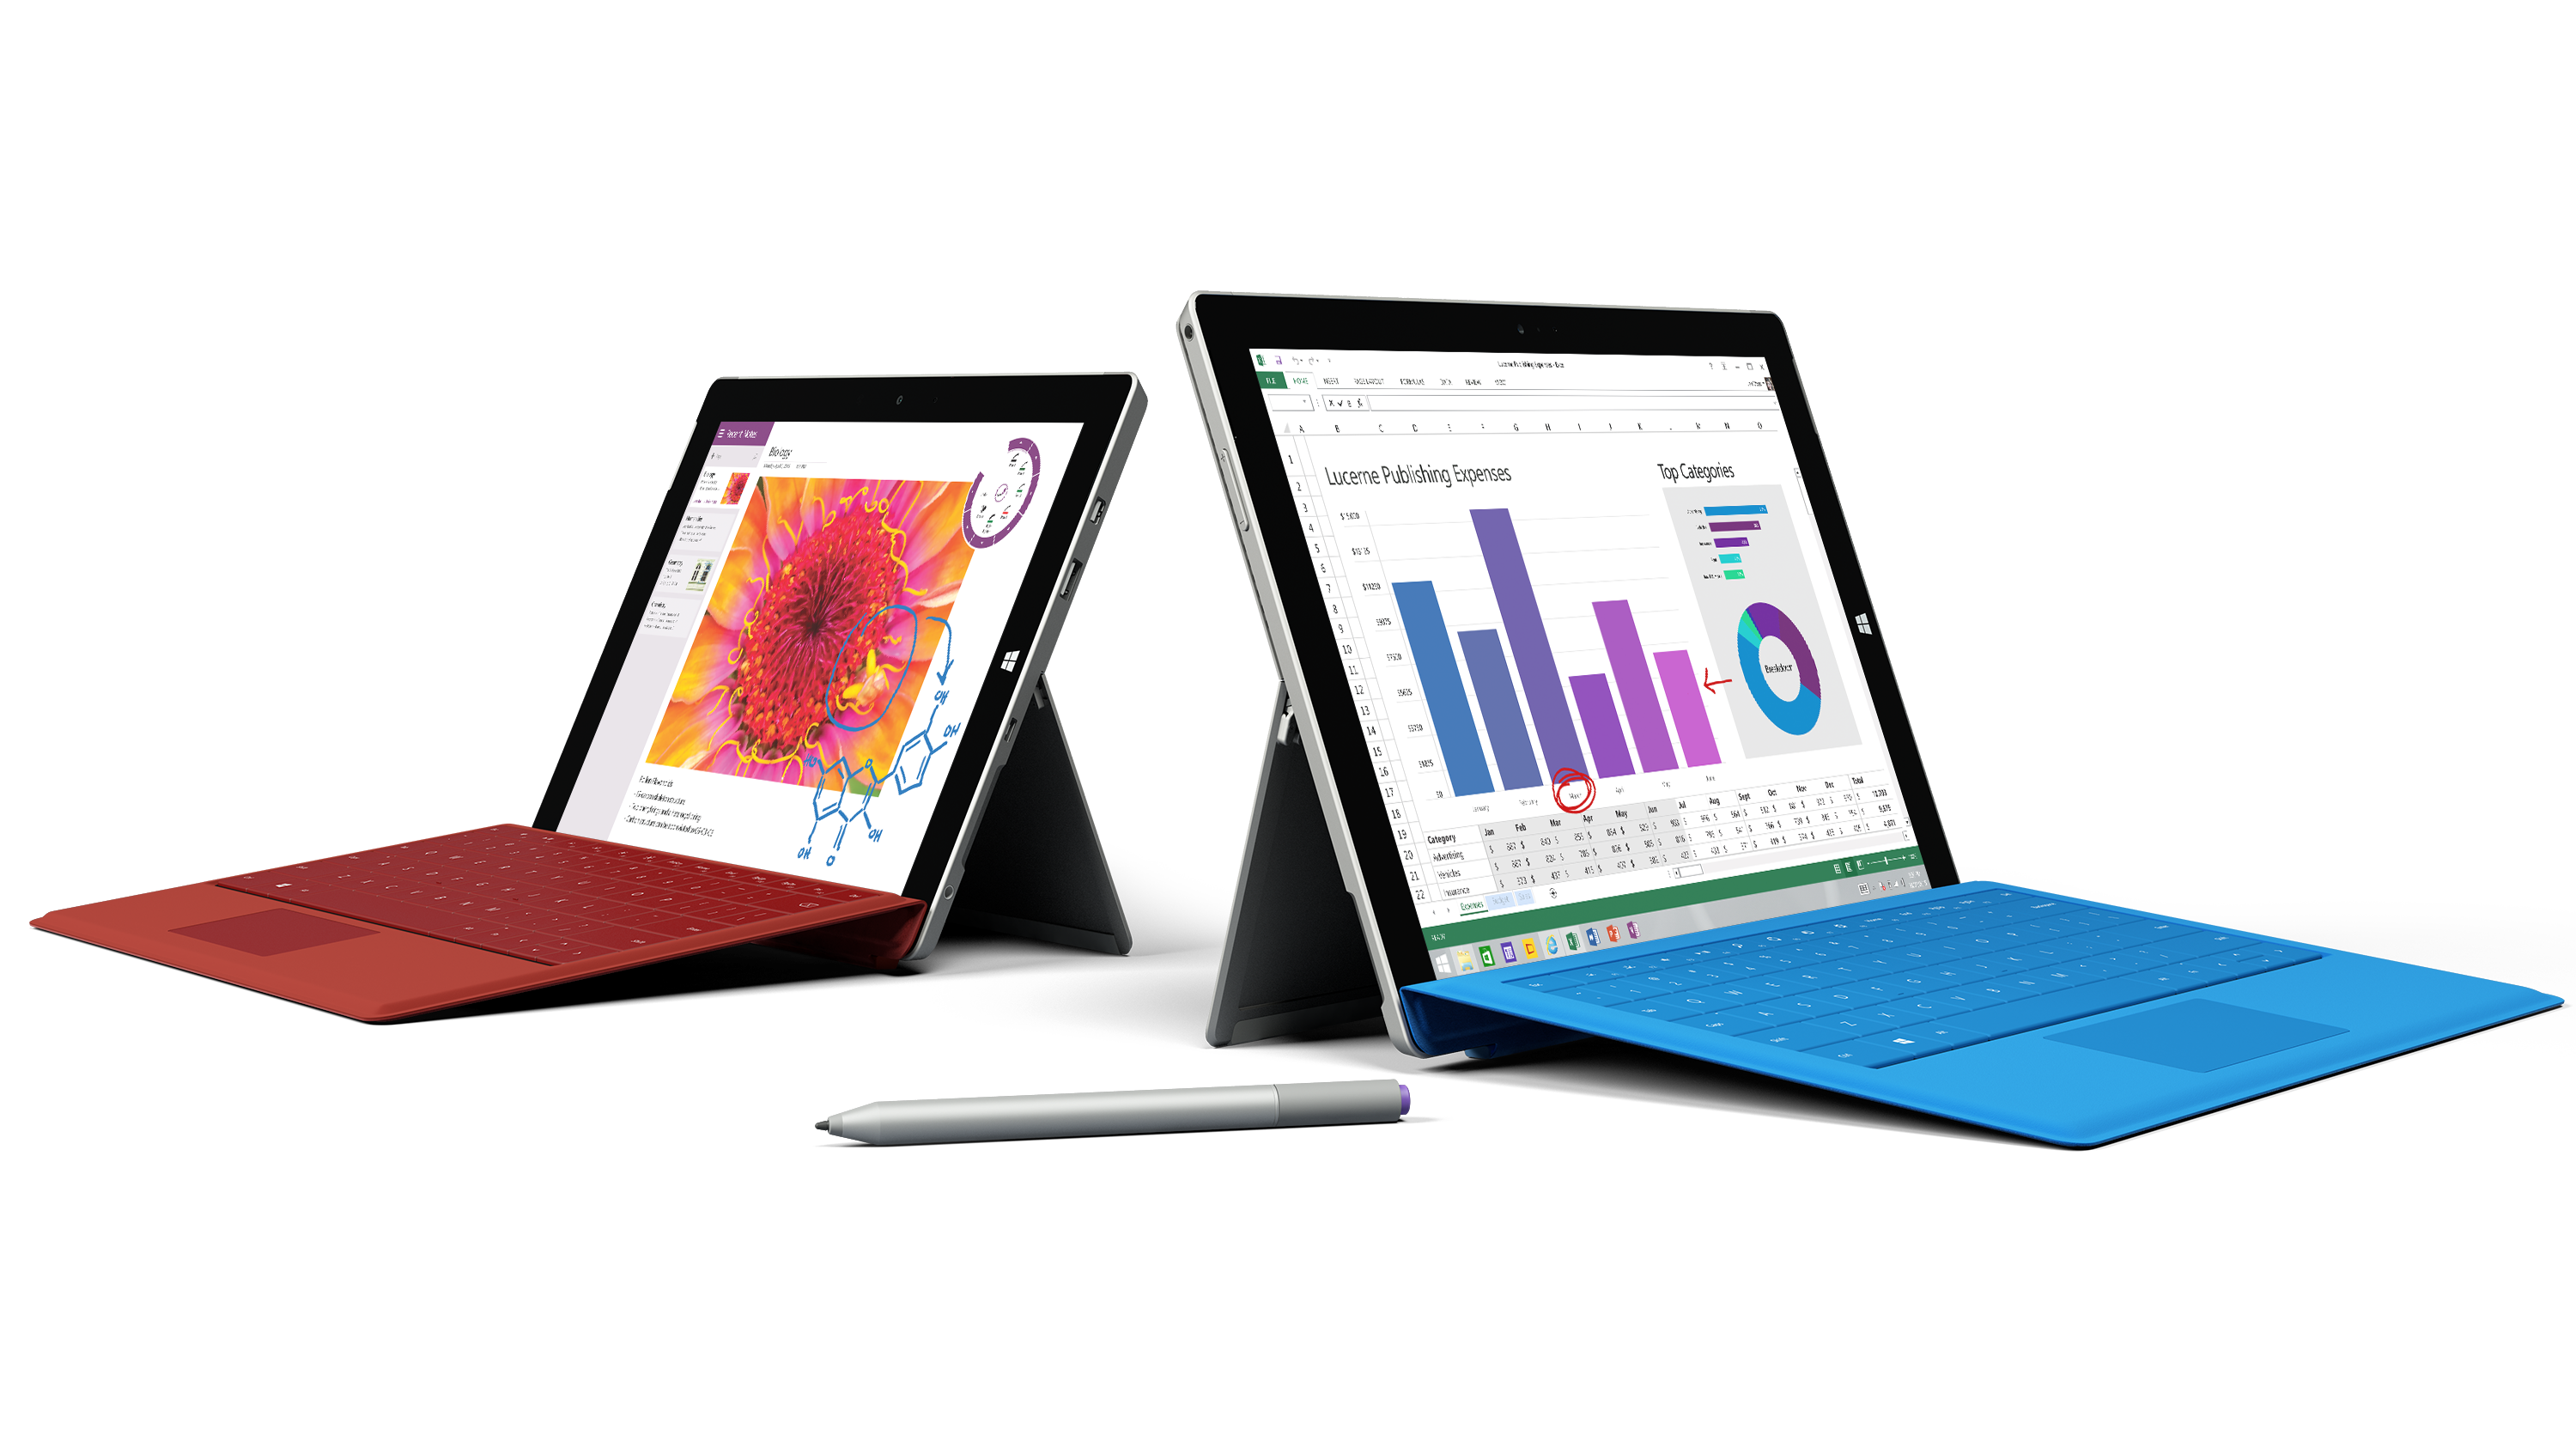 Surface 3 + Surface Pro 3